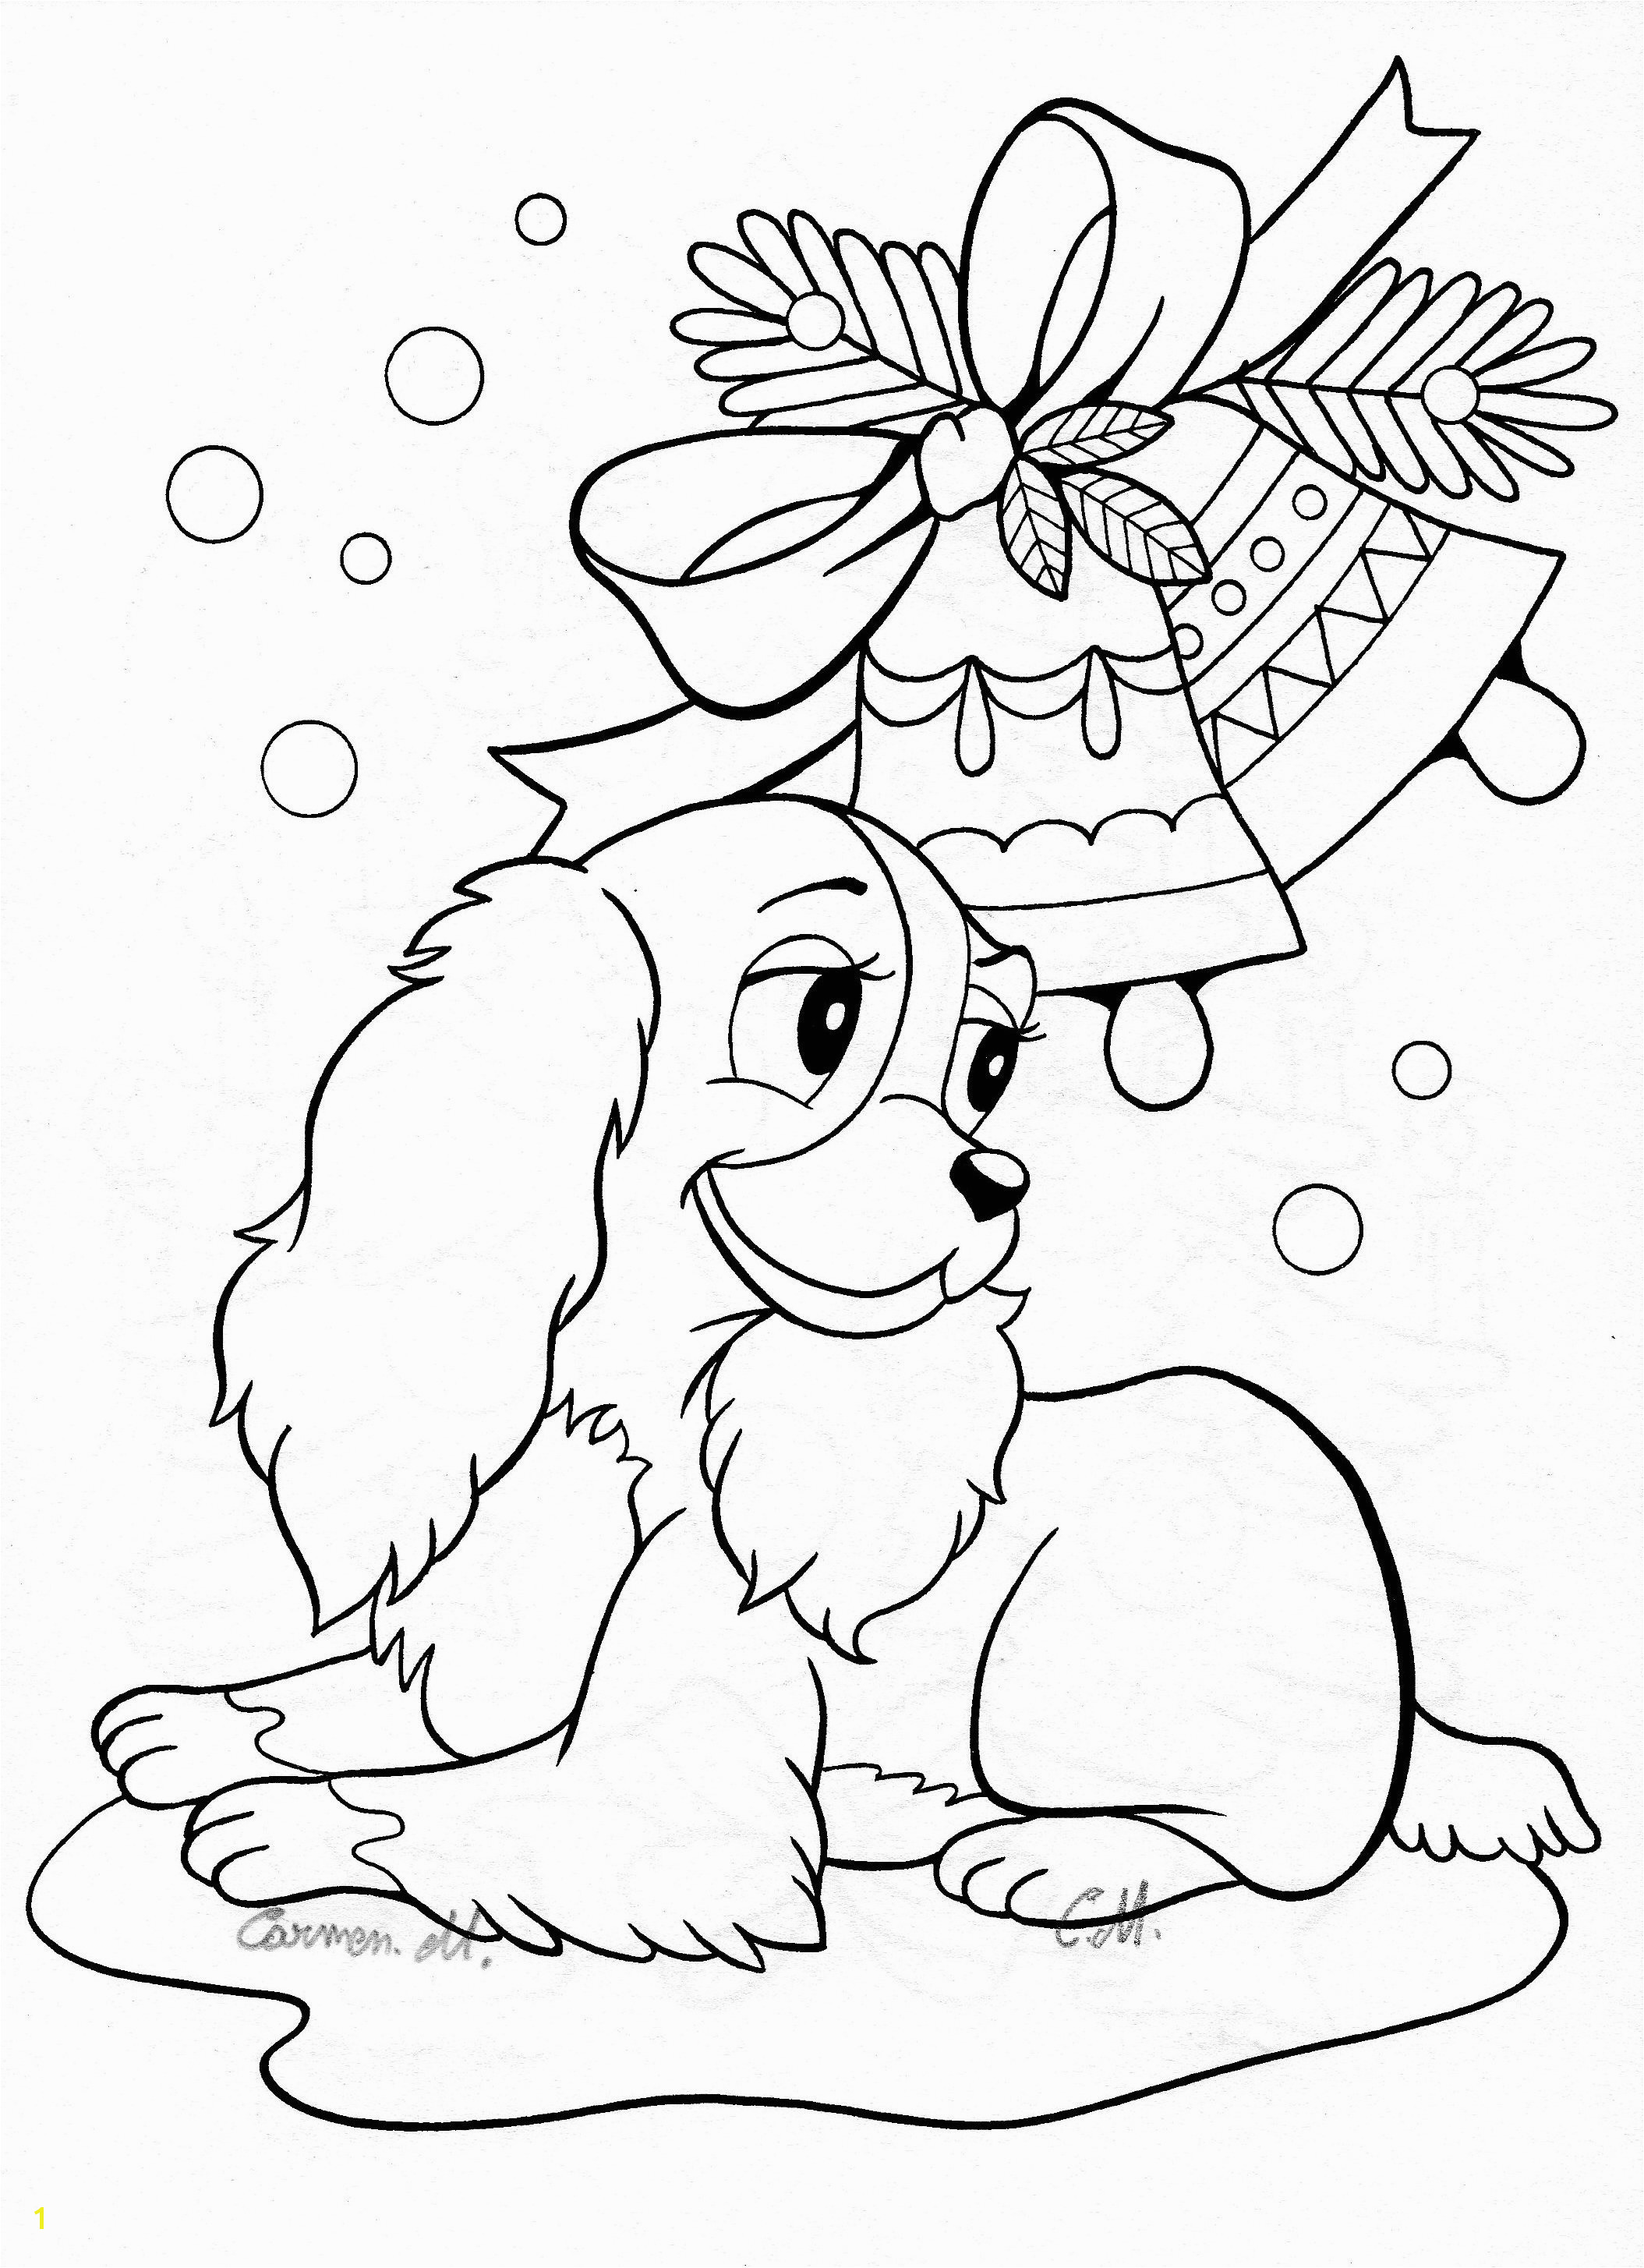 Printable Od Dog Coloring Pages Free Colouring Pages Dinosaur Coloring Pages